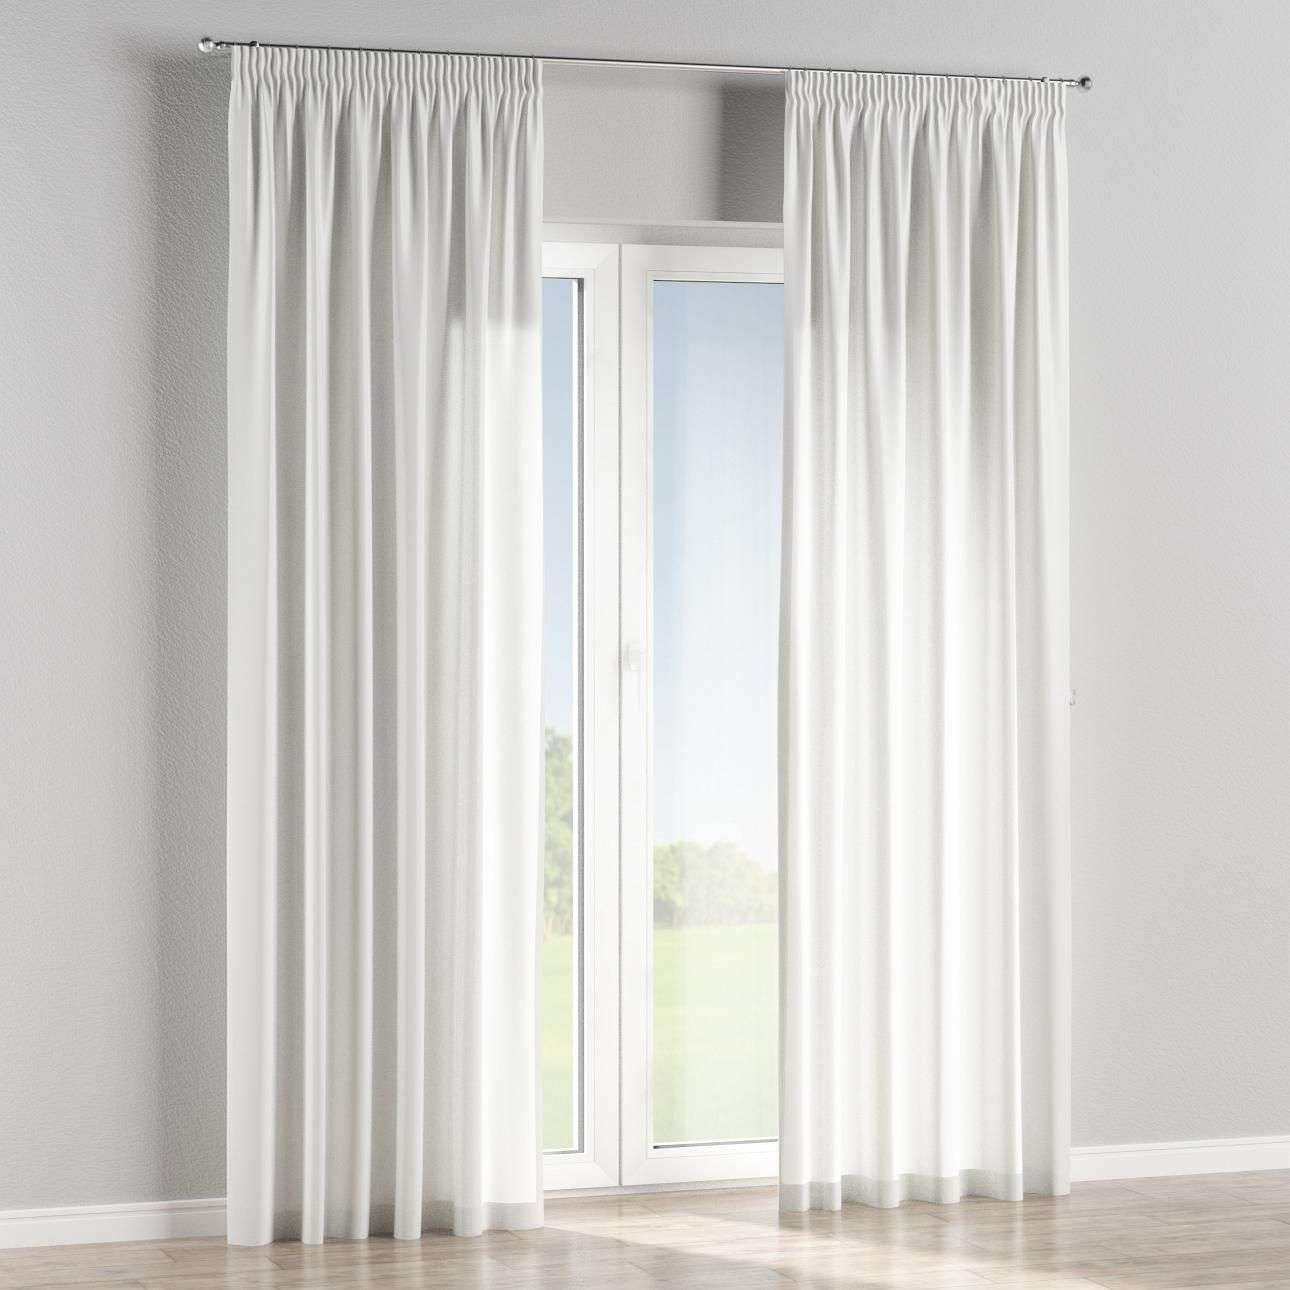 Pencil pleat curtains in collection Bristol, fabric: 125-25